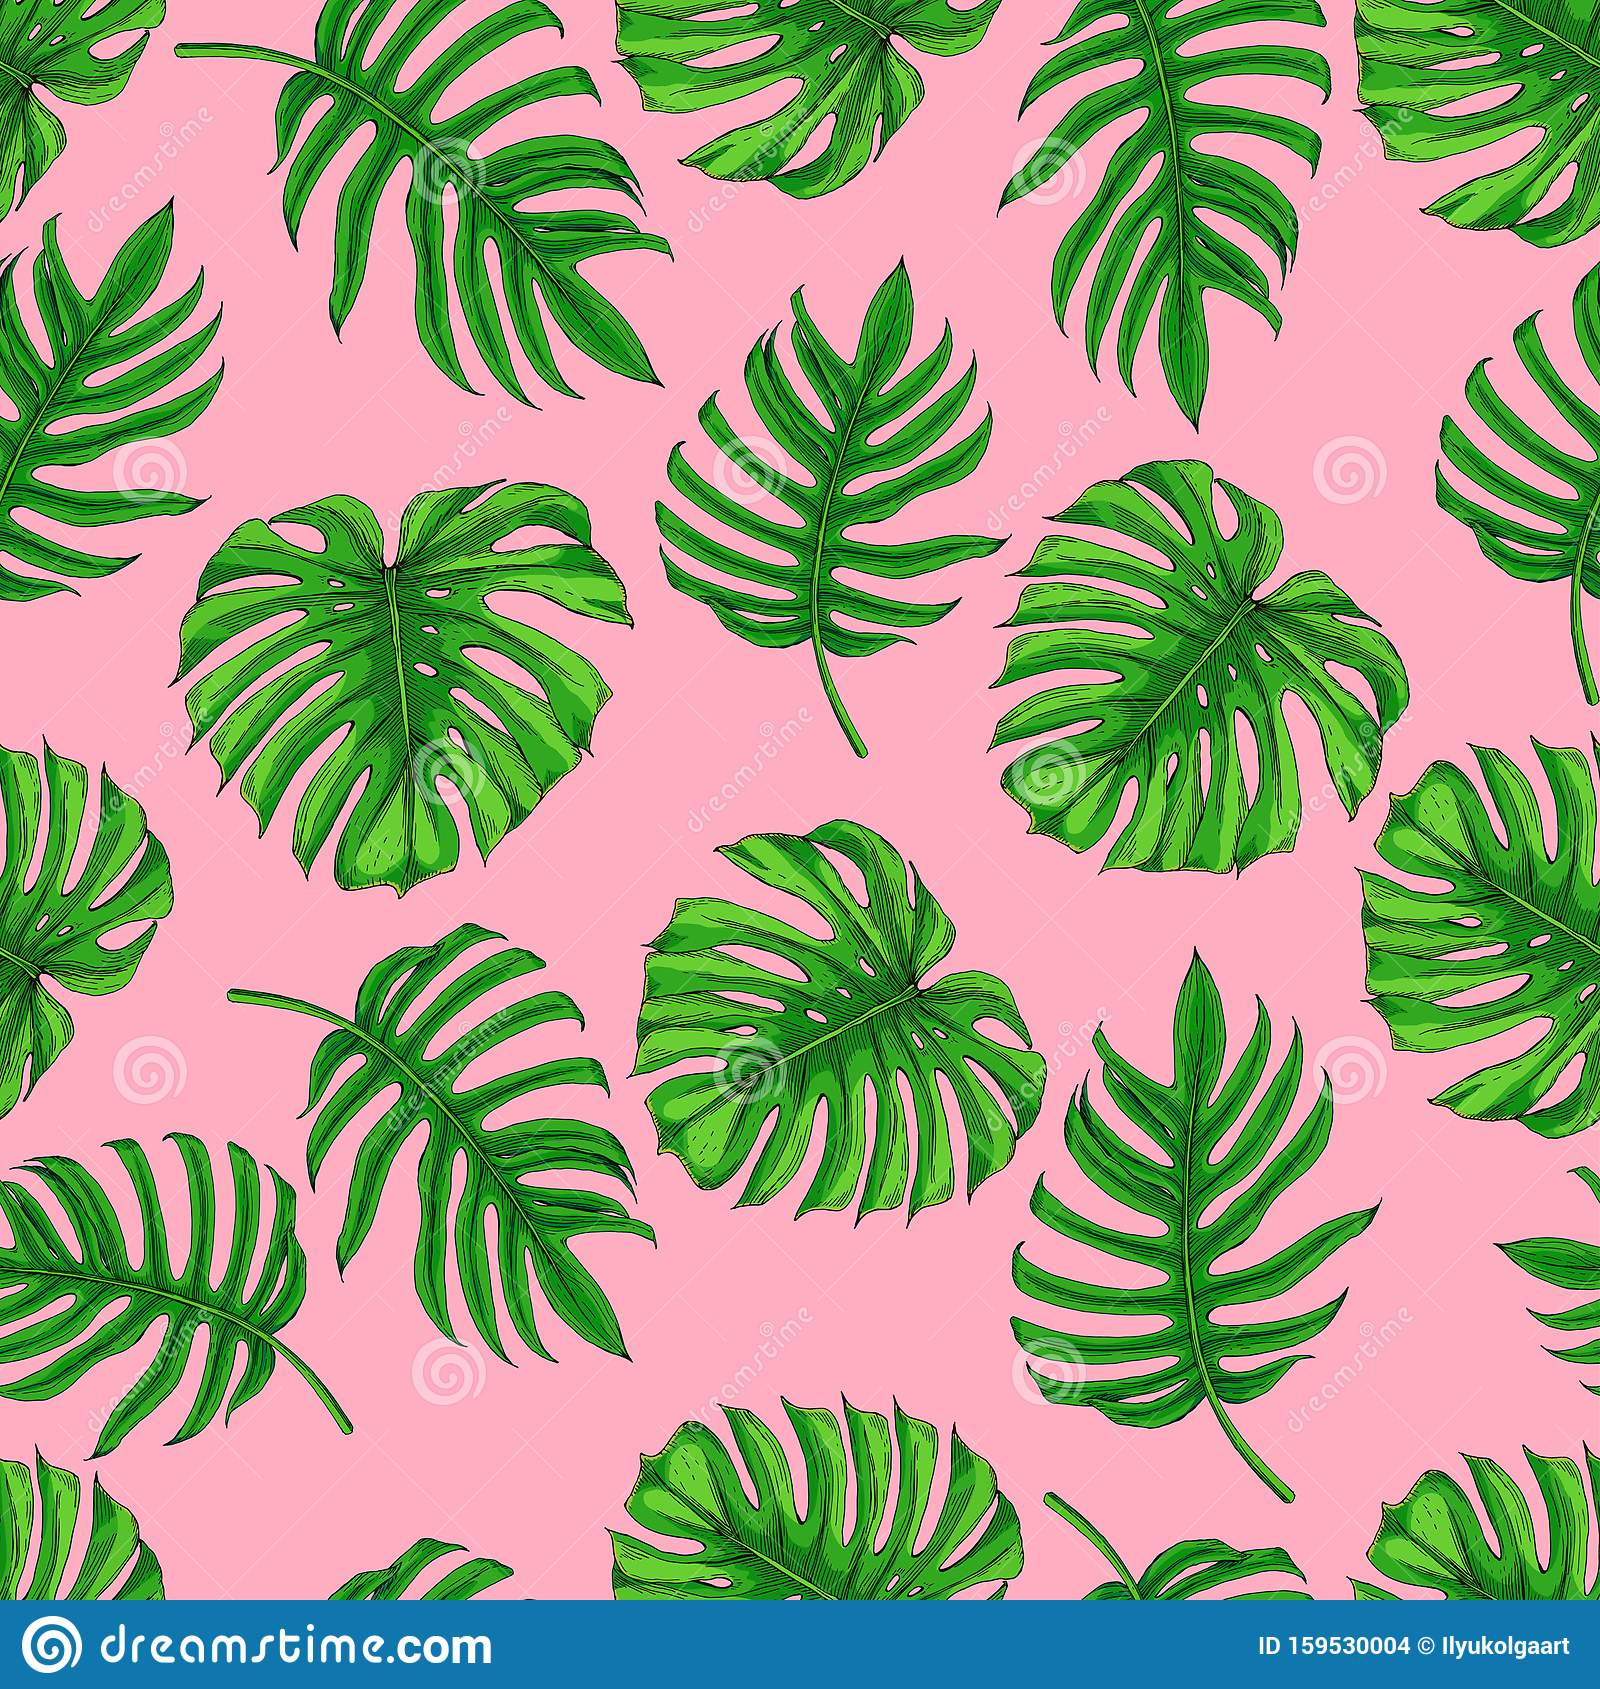 Different Tropical Leaves On A Pink Background Stock Illustration Illustration Of Branch Pink 159530004 Download the perfect tropical leaves pictures. https www dreamstime com different tropical leaves pink background seamless pattern image palm bright individual green emerald monster image159530004